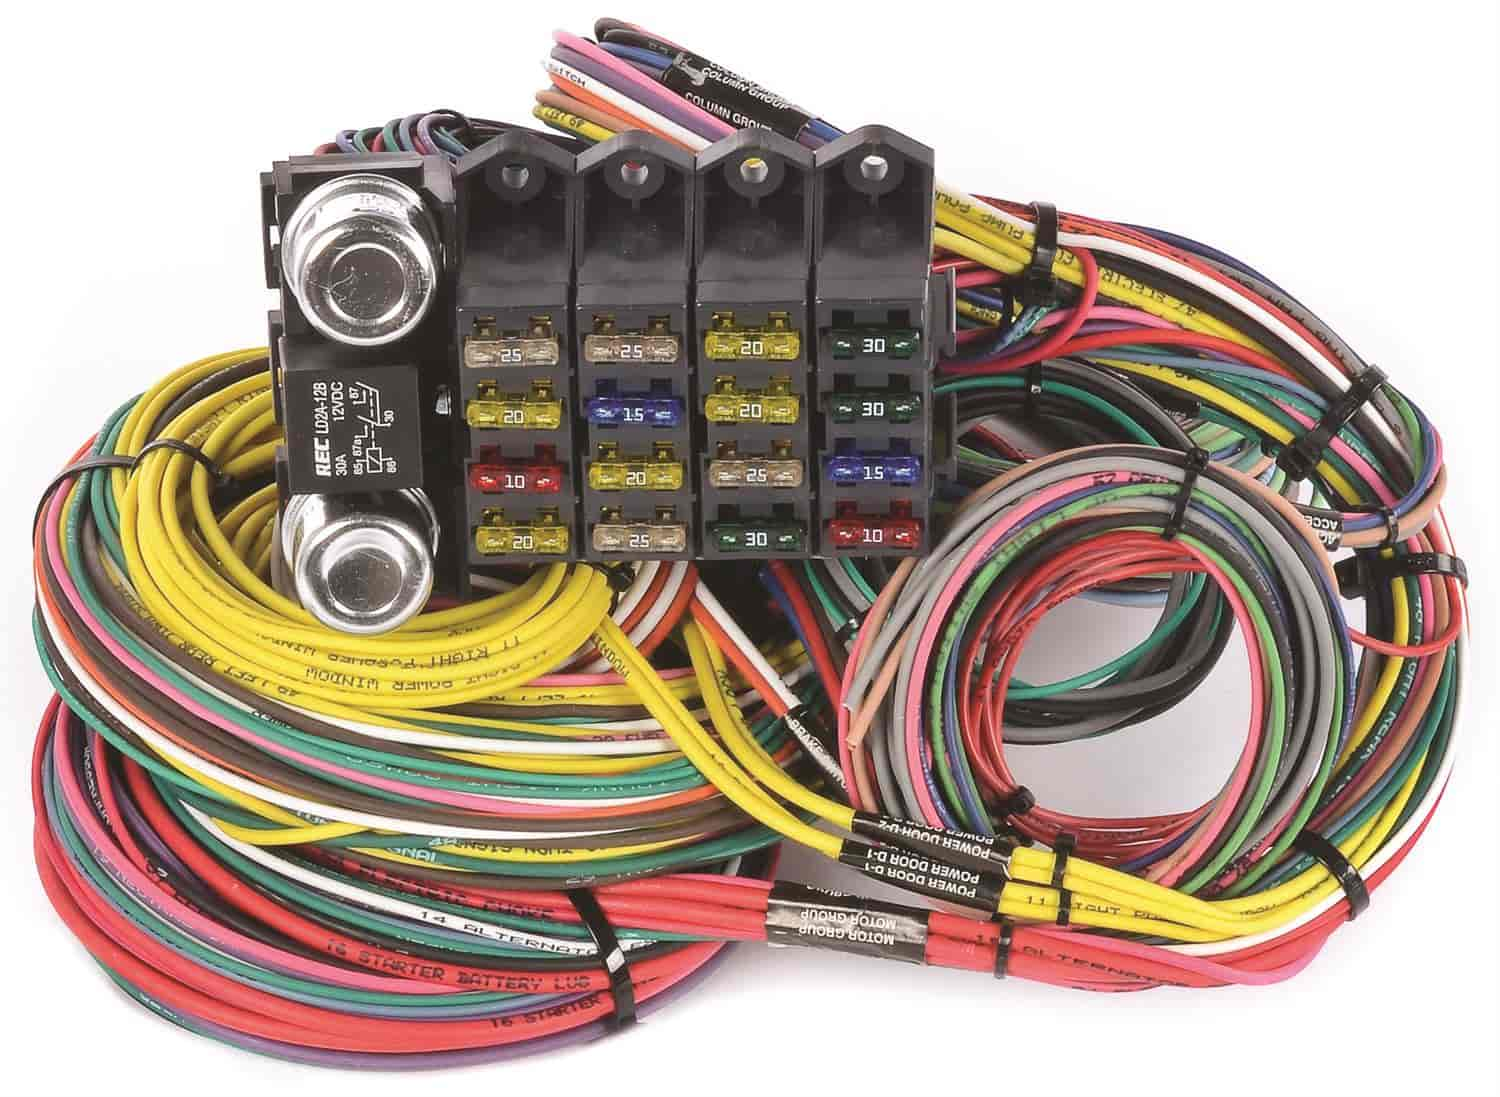 555 10405 jegs performance products 10405 universal wiring harness, 20 jegs universal wiring harness at fashall.co